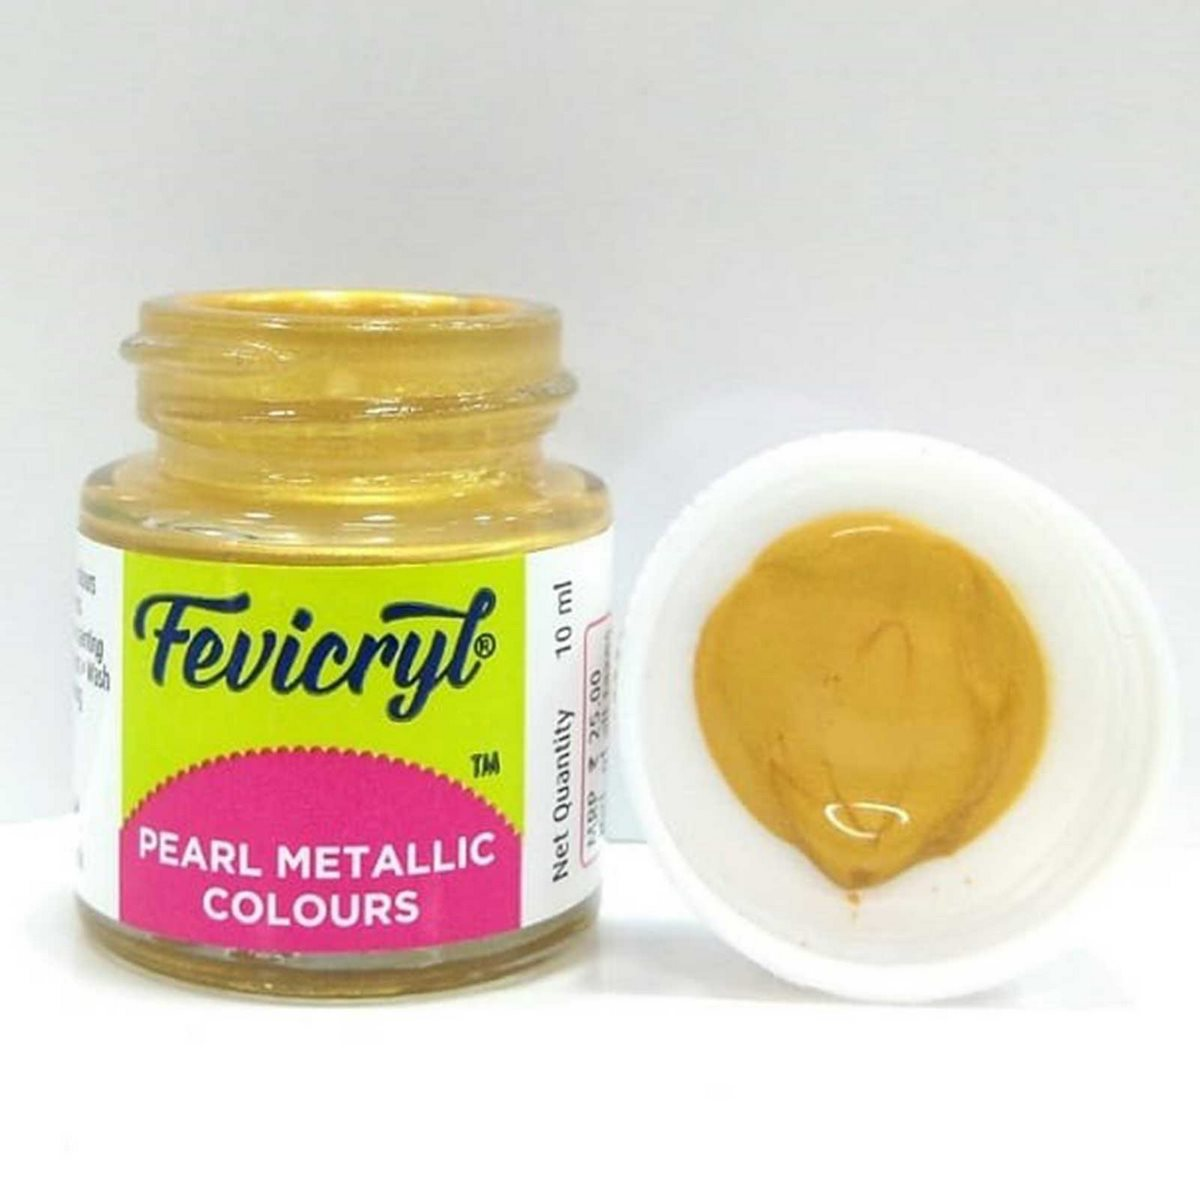 Fevicryl Pearl Metallic Colours Gold DSOD25